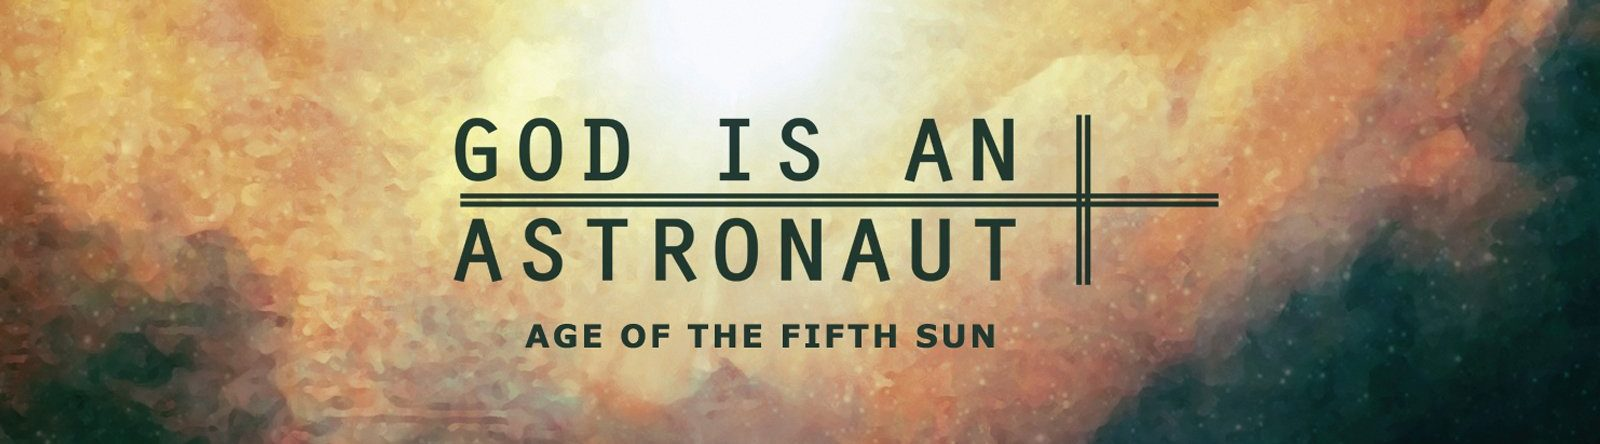 Age of the Fifth Sun (God is an Astronaut)